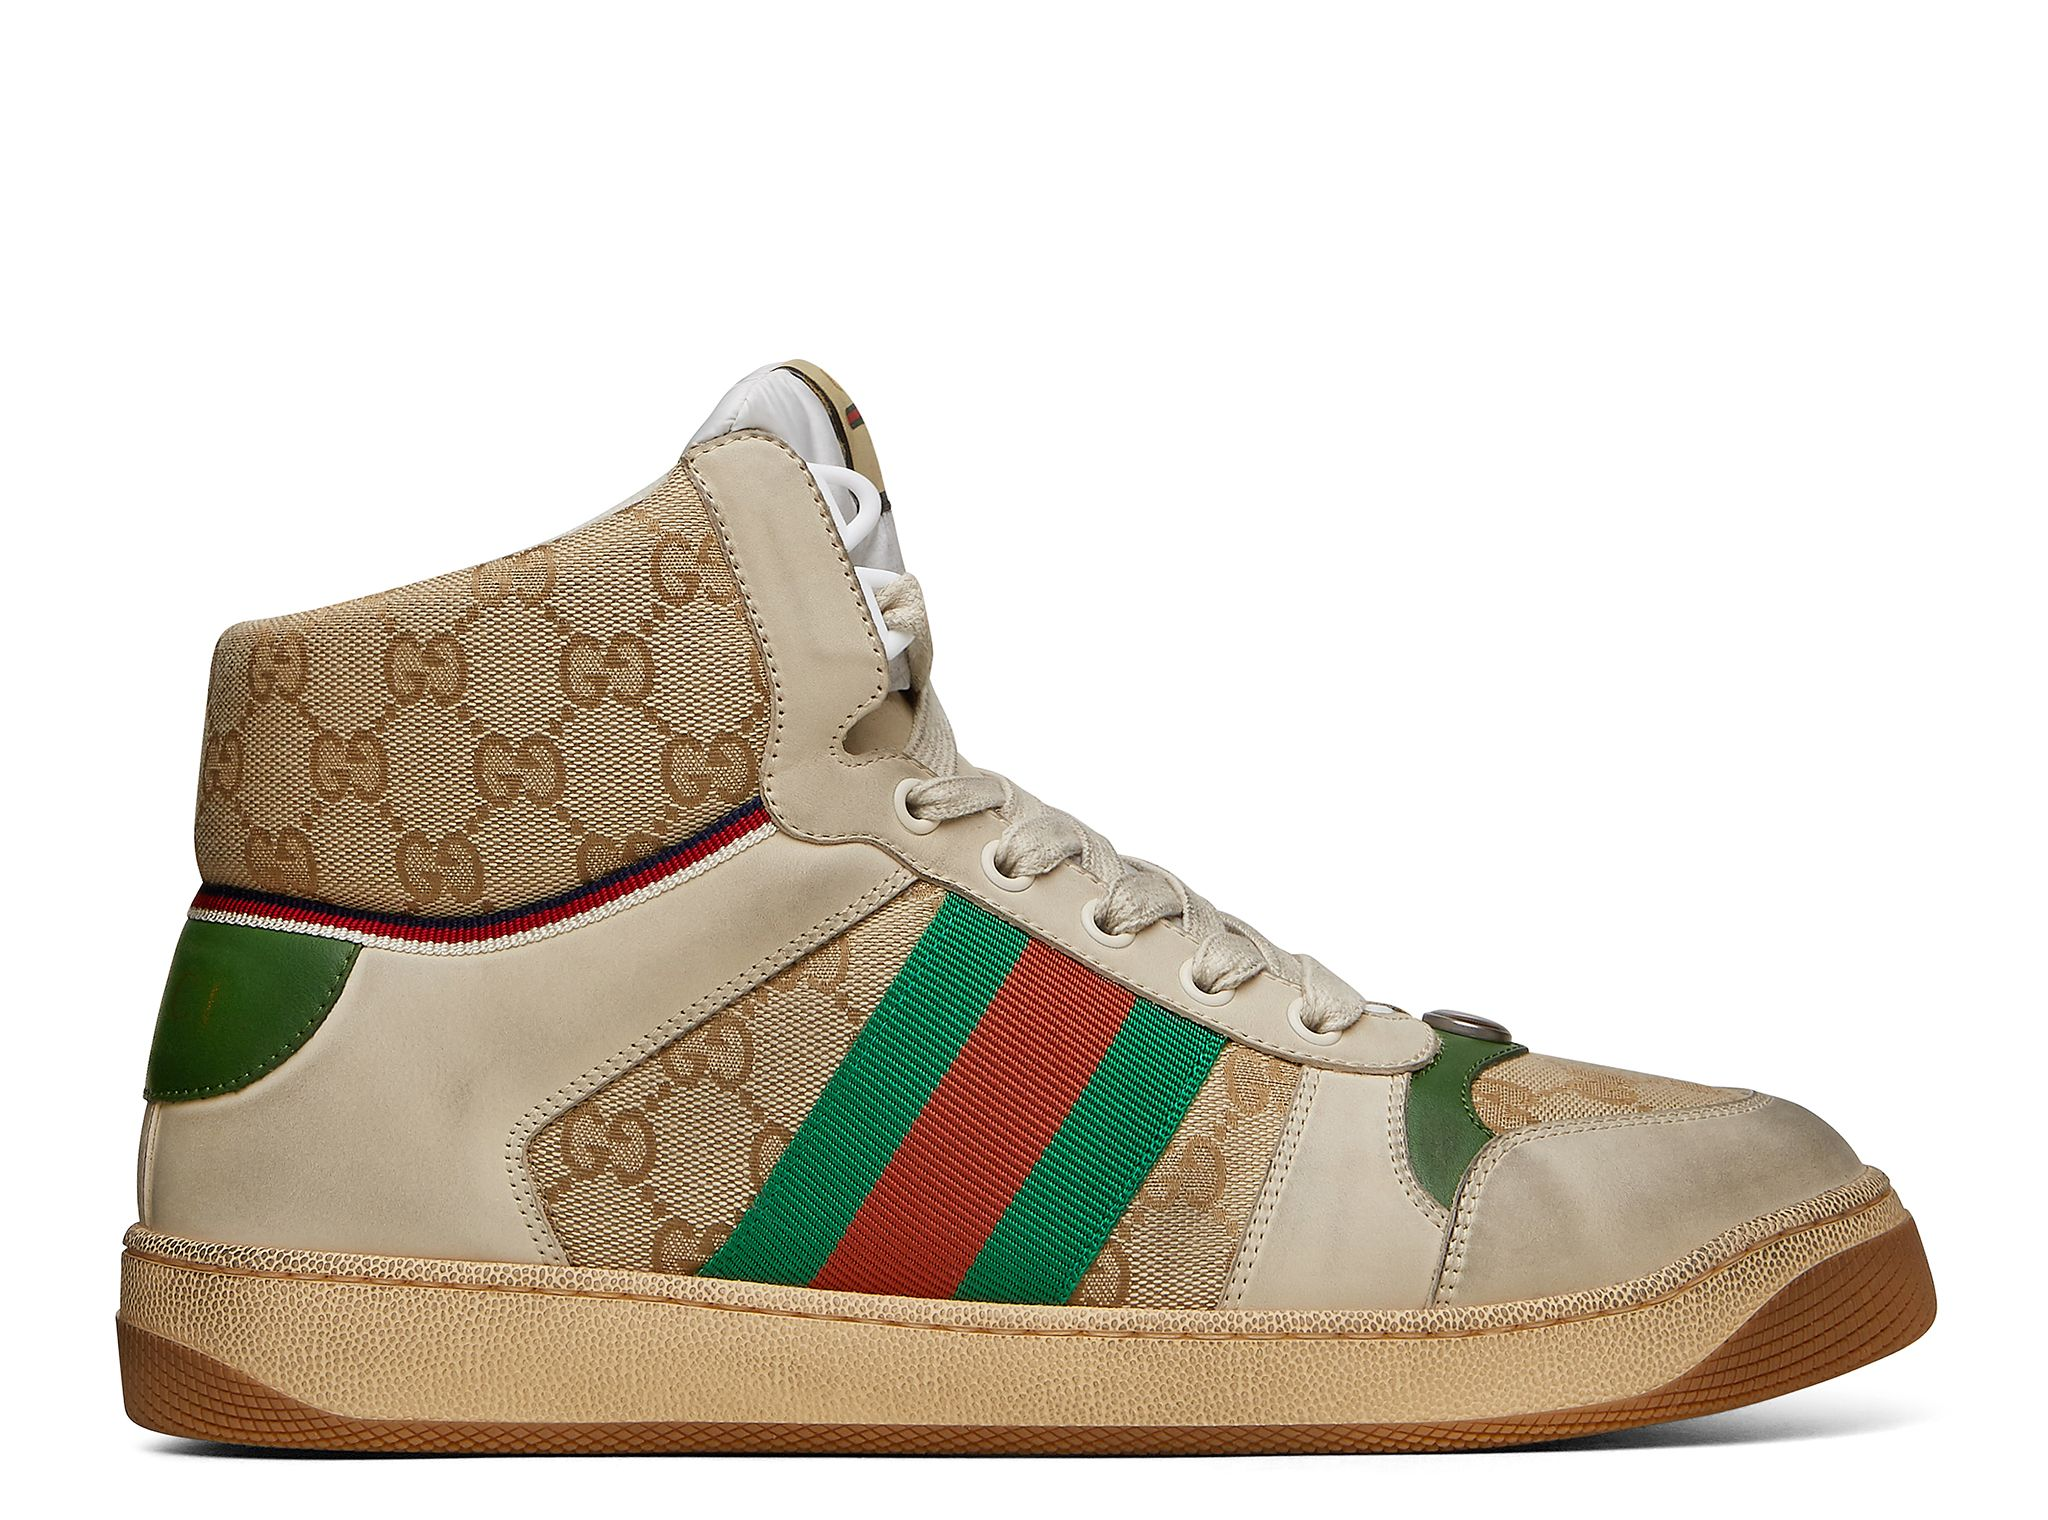 43734648b GUCCI MENS SCREENER GG HIGH-TOP SNEAKER. the spring summer 2019 collection  continues to